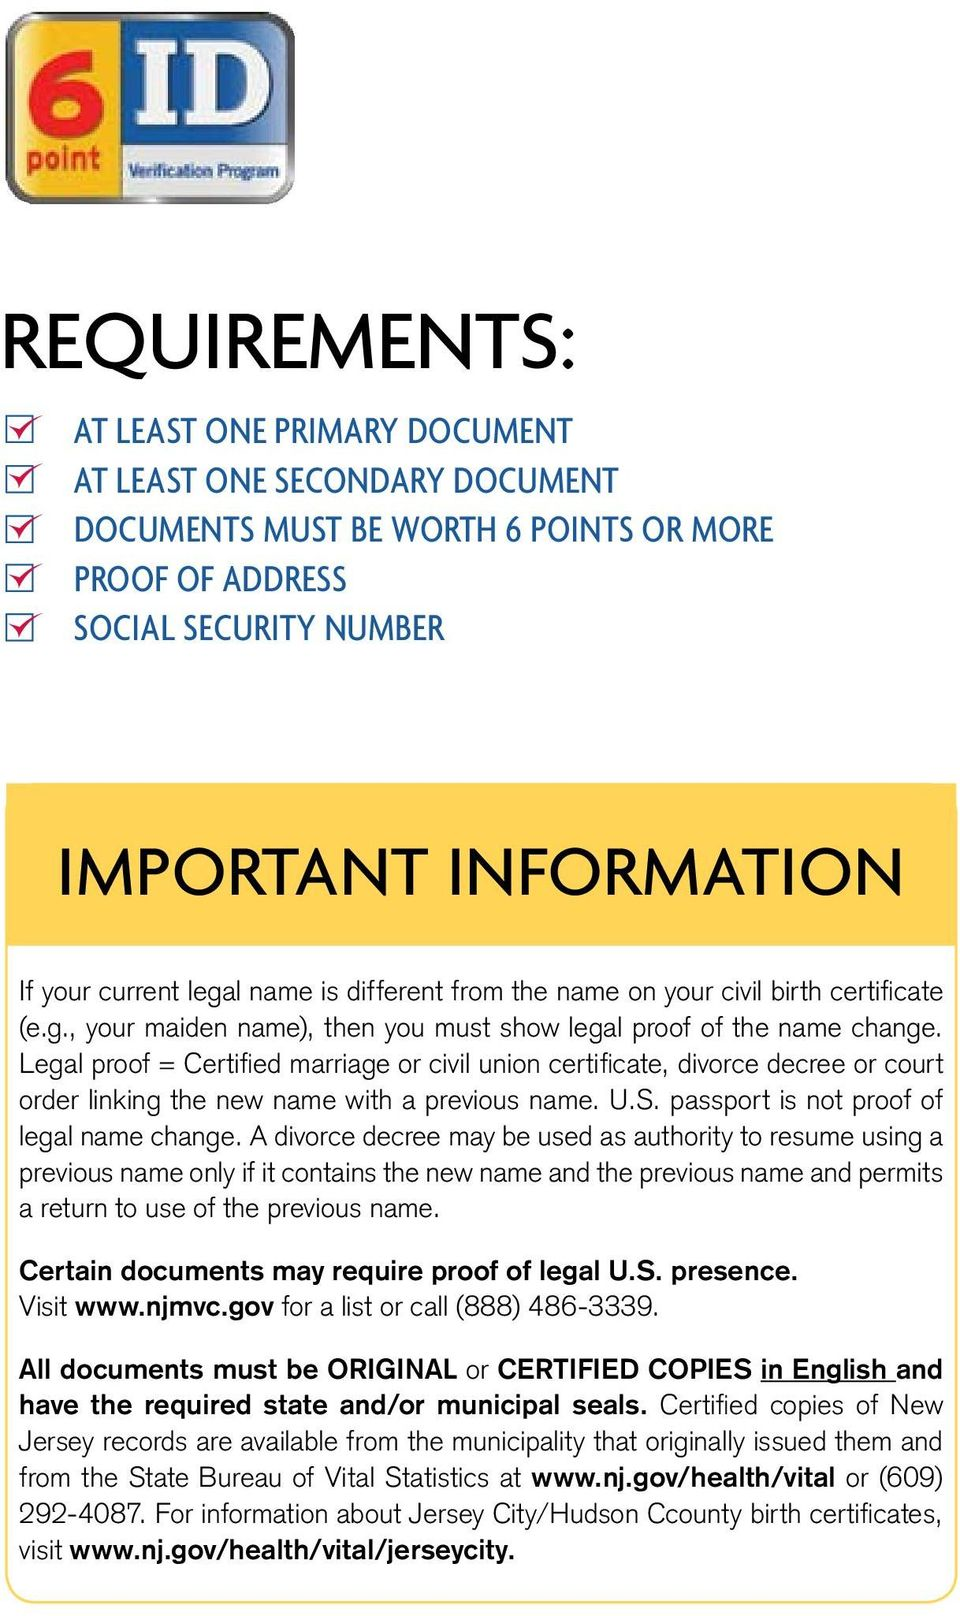 Legal proof = Certified marriage or civil union certificate, divorce decree or court order linking the new name with a previous name. U.S. passport is not proof of legal name change.